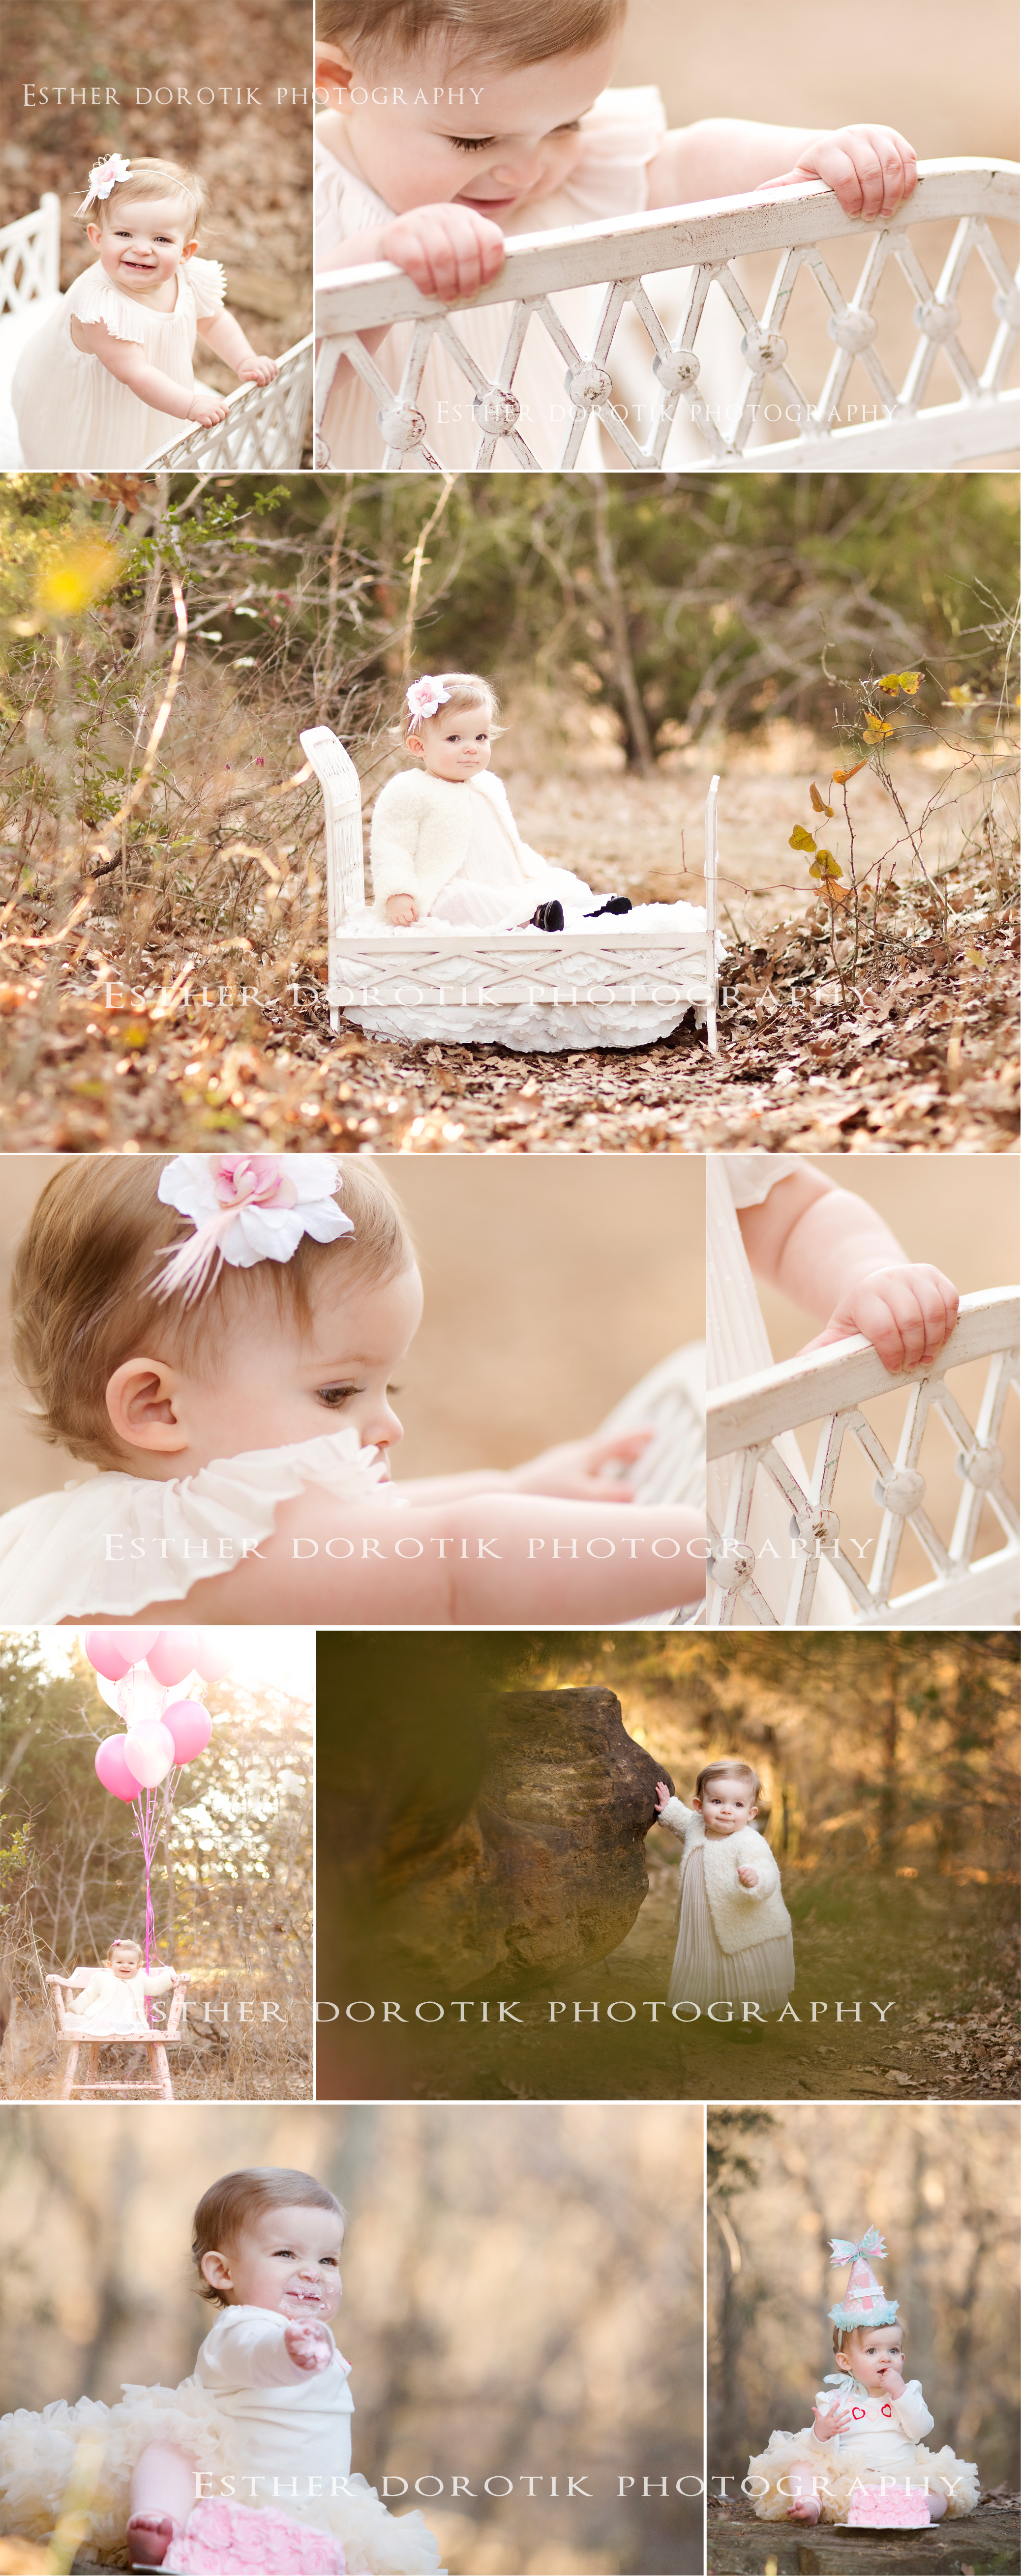 one-year-baby-photography-session-with-smash-cake-taken-by-Frisco-baby-photographer